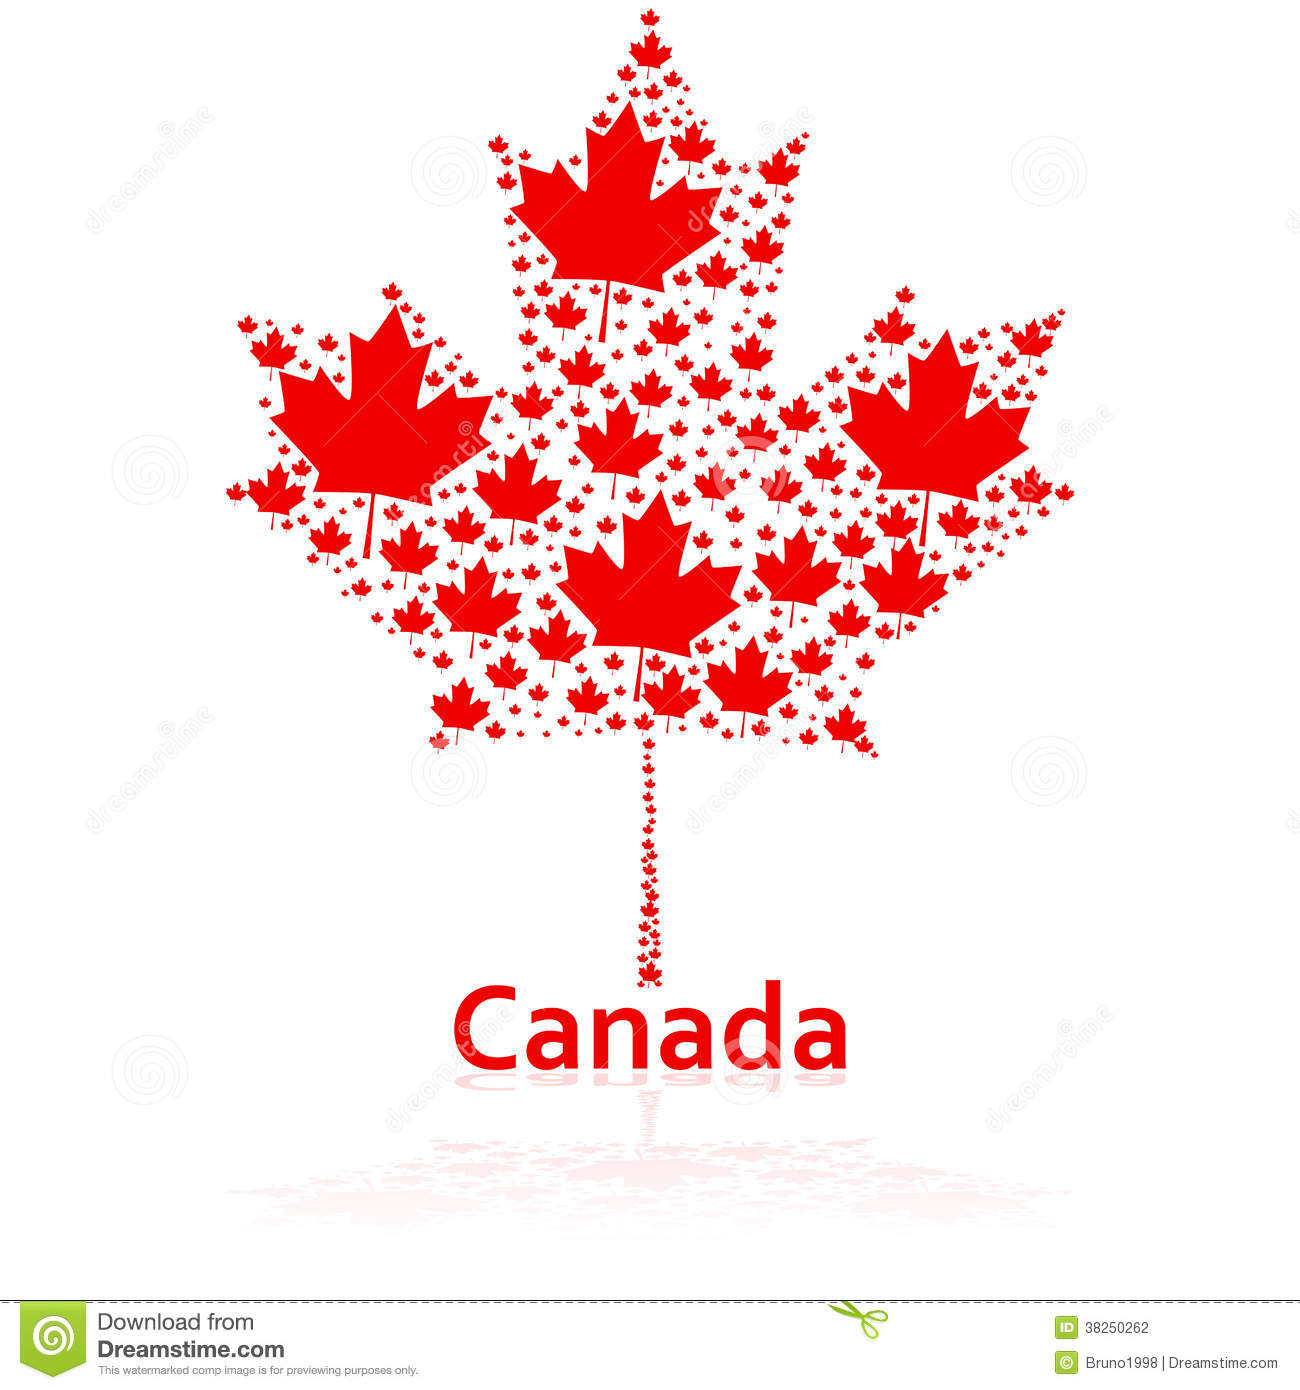 Feuille d 39 rable canadienne photographie stock image 38250262 - Erable rouge du canada ...